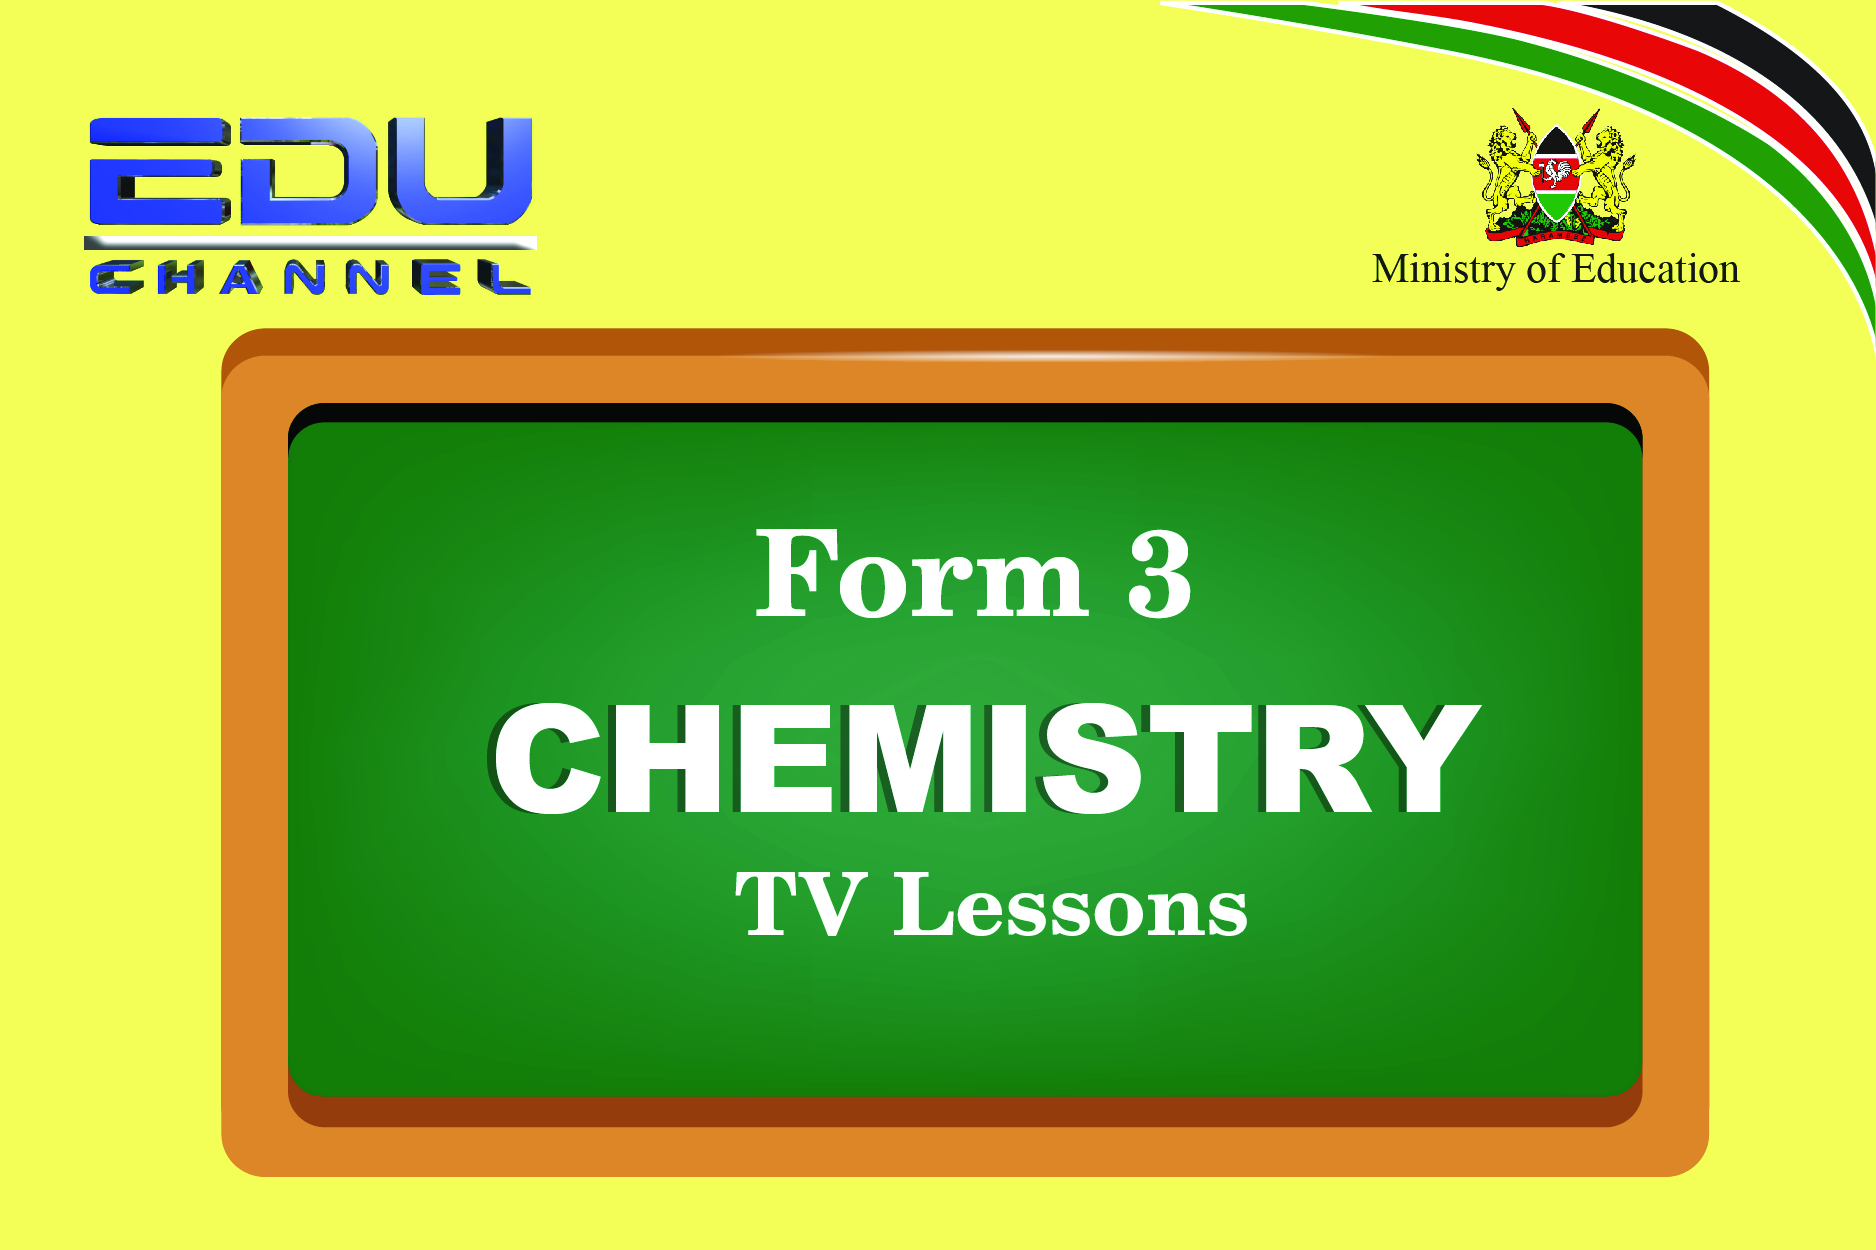 Form 3 Chemistry Lesson 1: Gas Laws Boyle's law and Charle's law